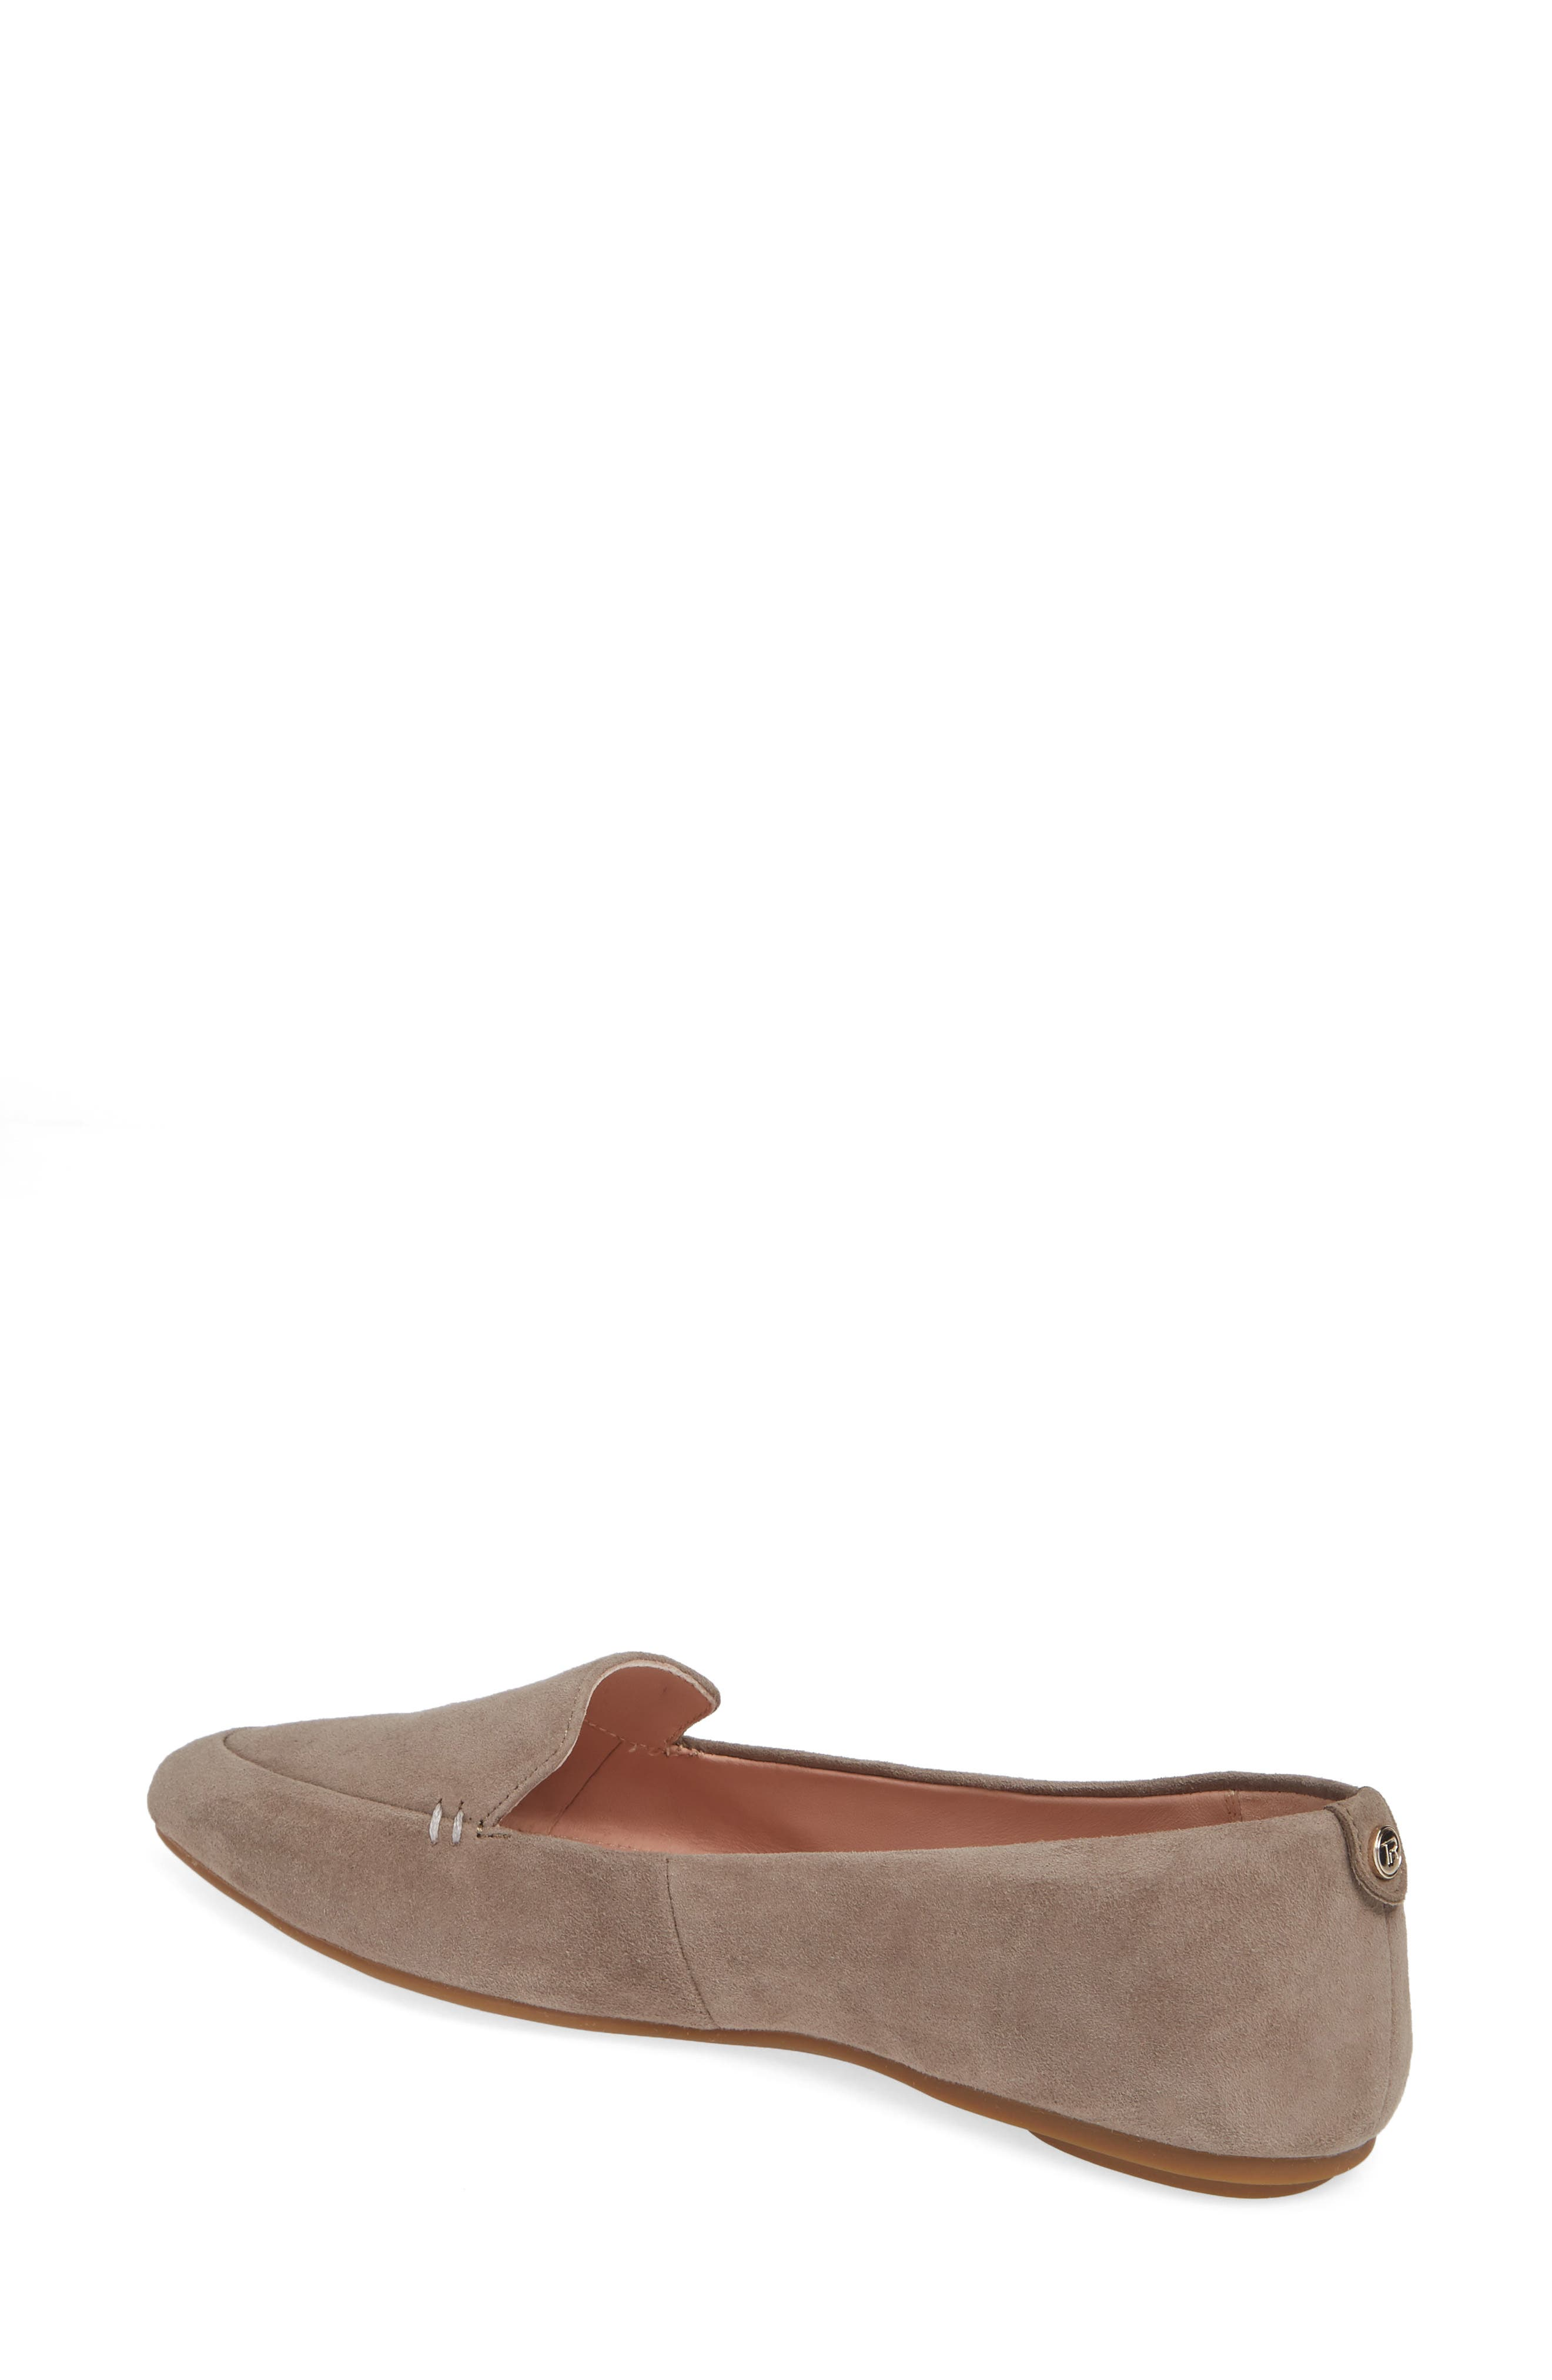 TARYN ROSE, Faye Pointy Toe Loafer, Alternate thumbnail 2, color, CLAY SUEDE